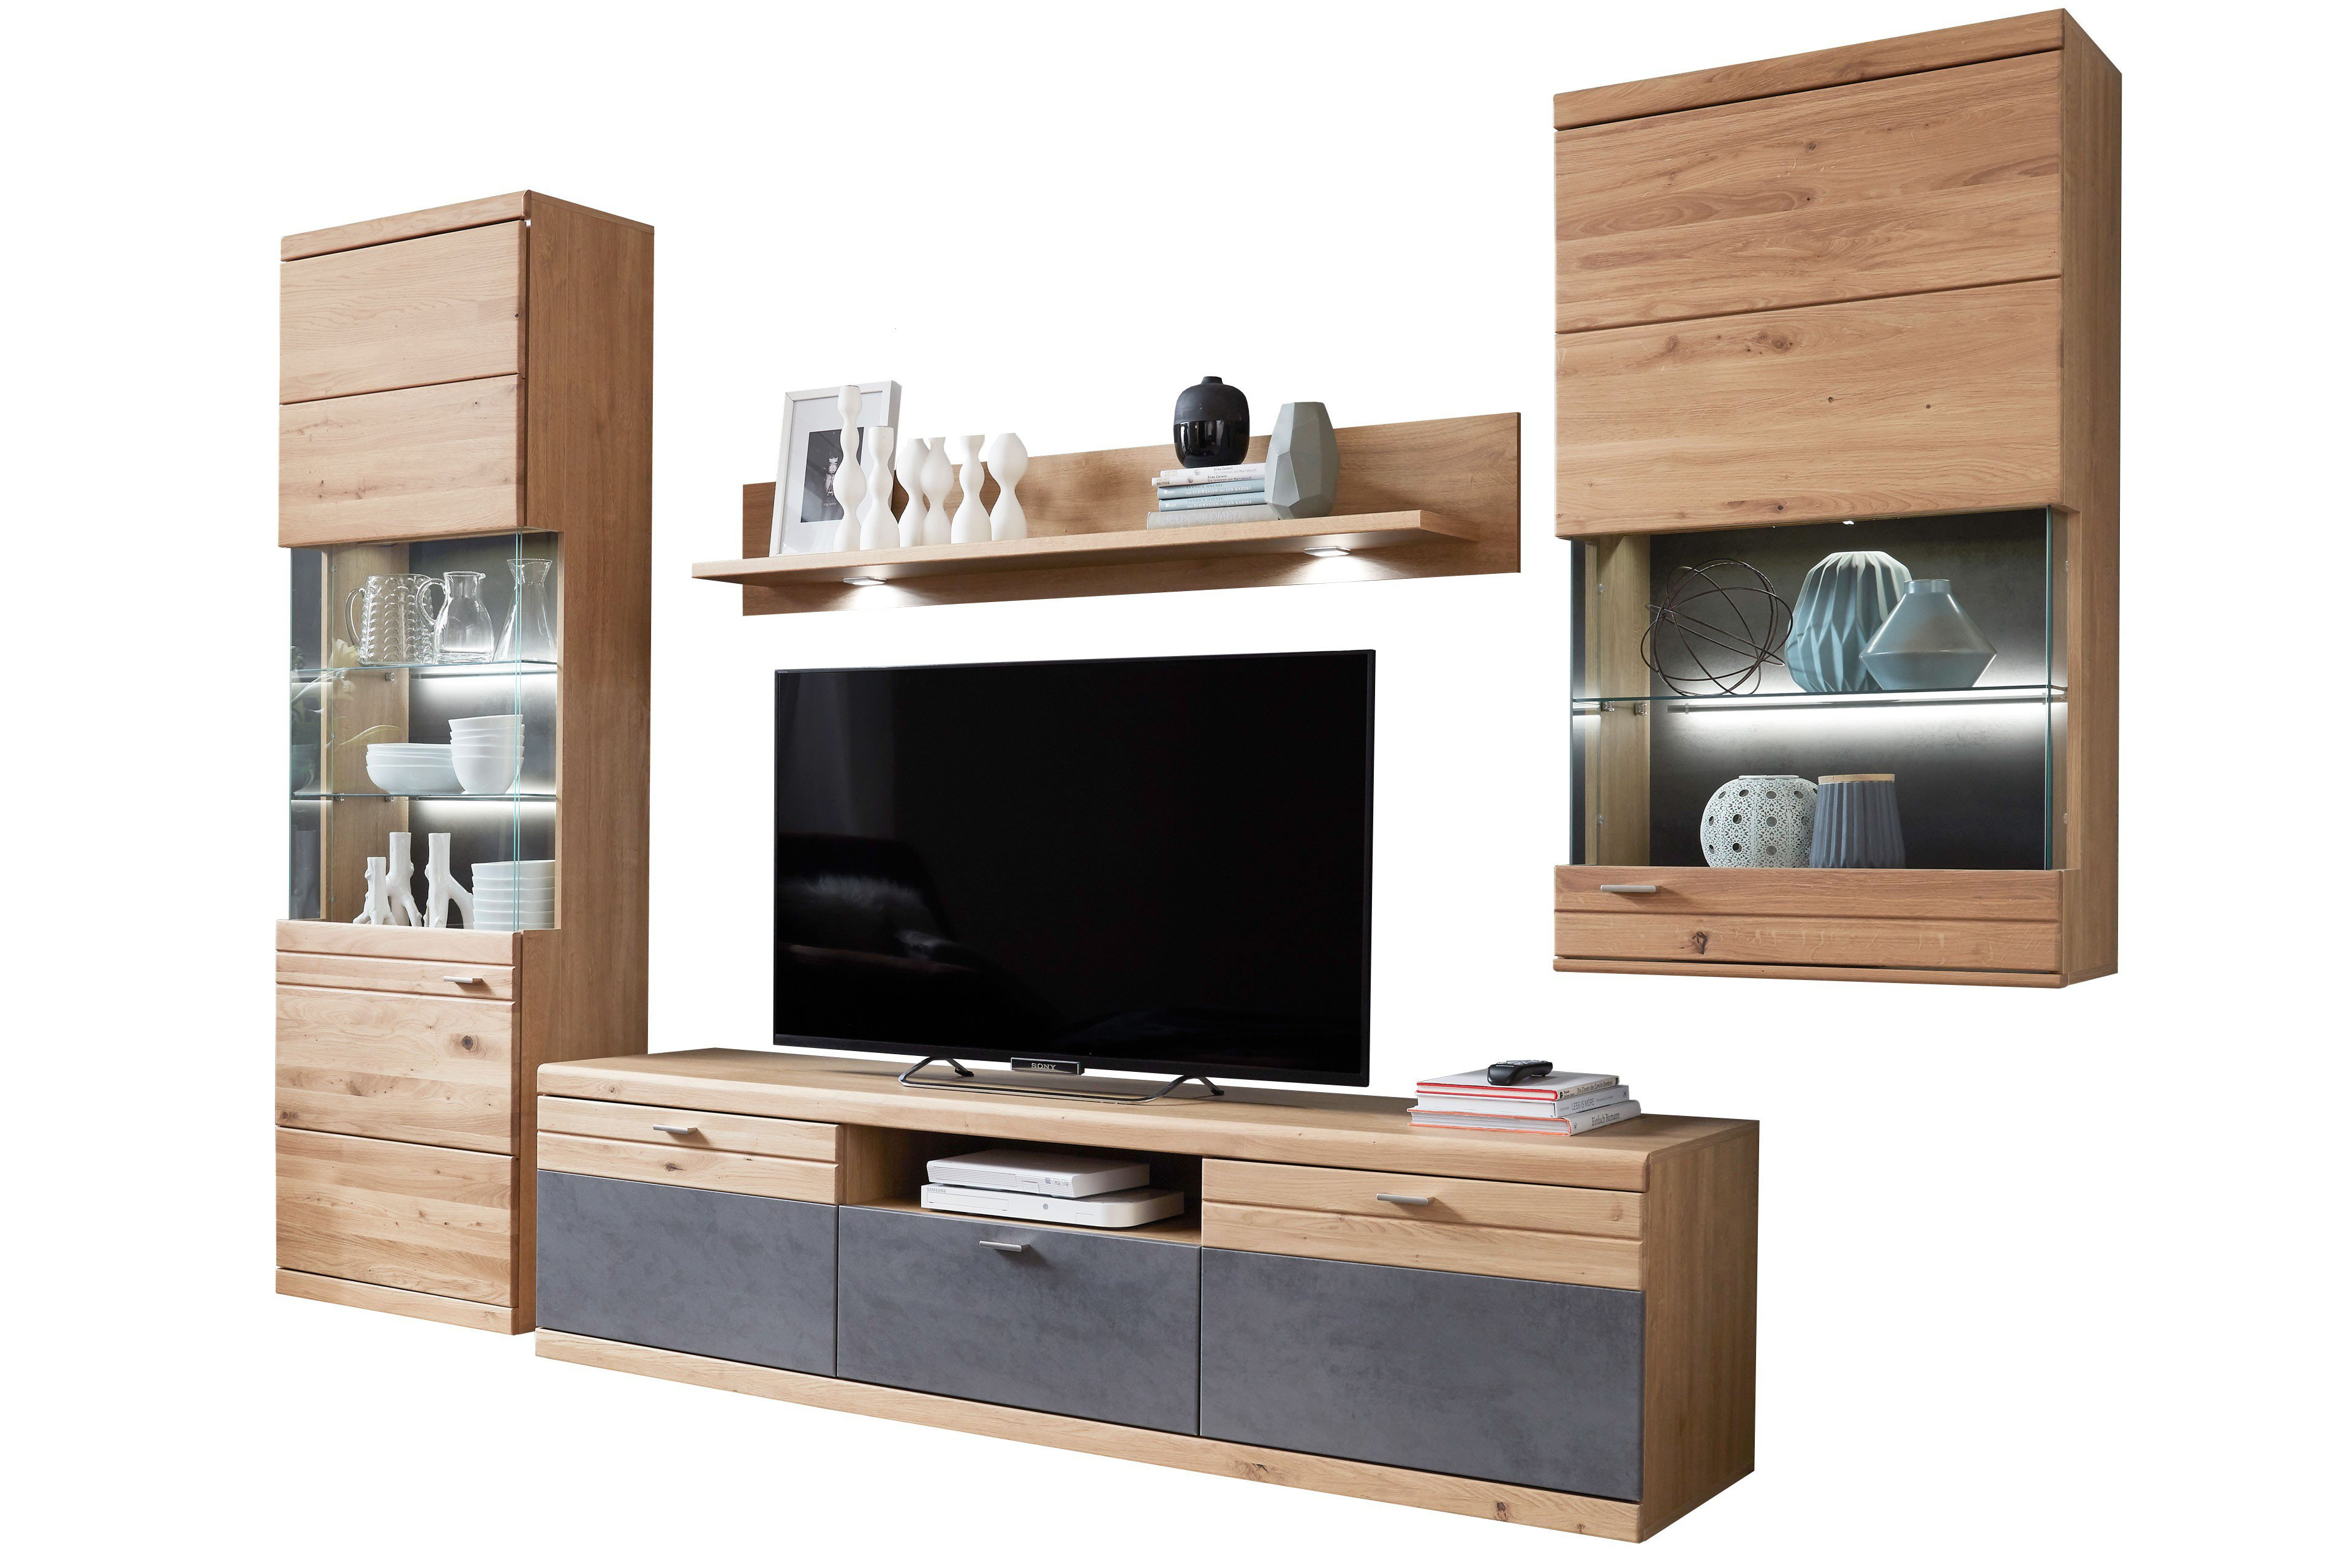 ideal m bel wohnwand elena 13 alteiche oxid m bel letz ihr online shop. Black Bedroom Furniture Sets. Home Design Ideas